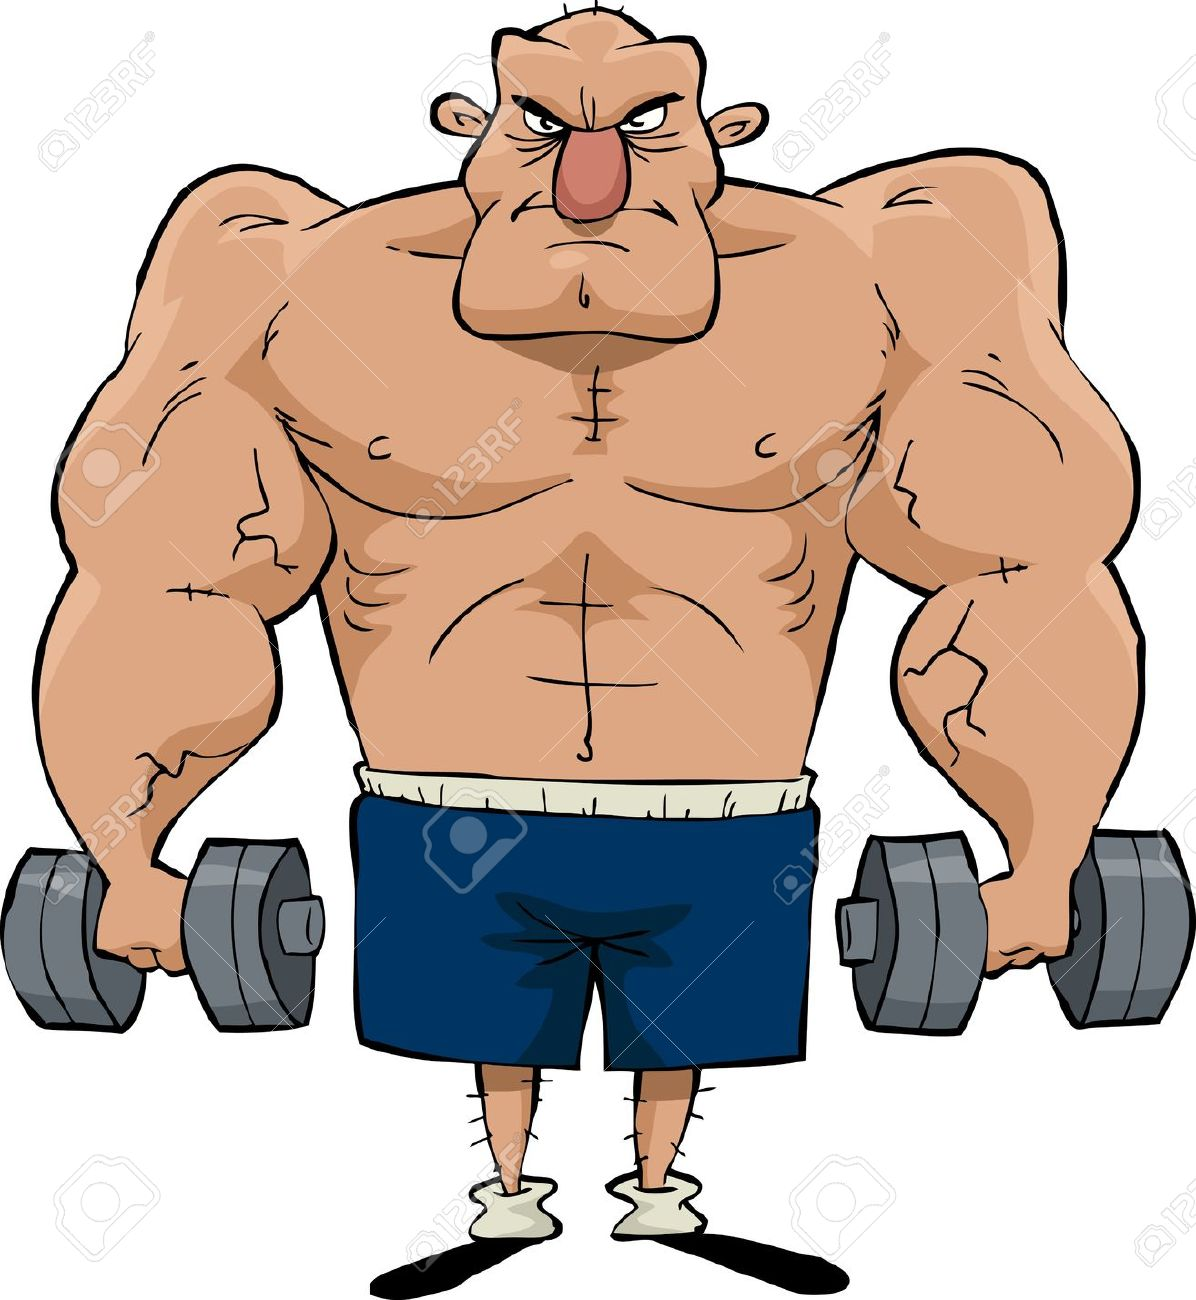 Muscle Clip Art . Muscle Man: Big Man Wi-Muscle Clip Art . muscle man: Big man with .-8